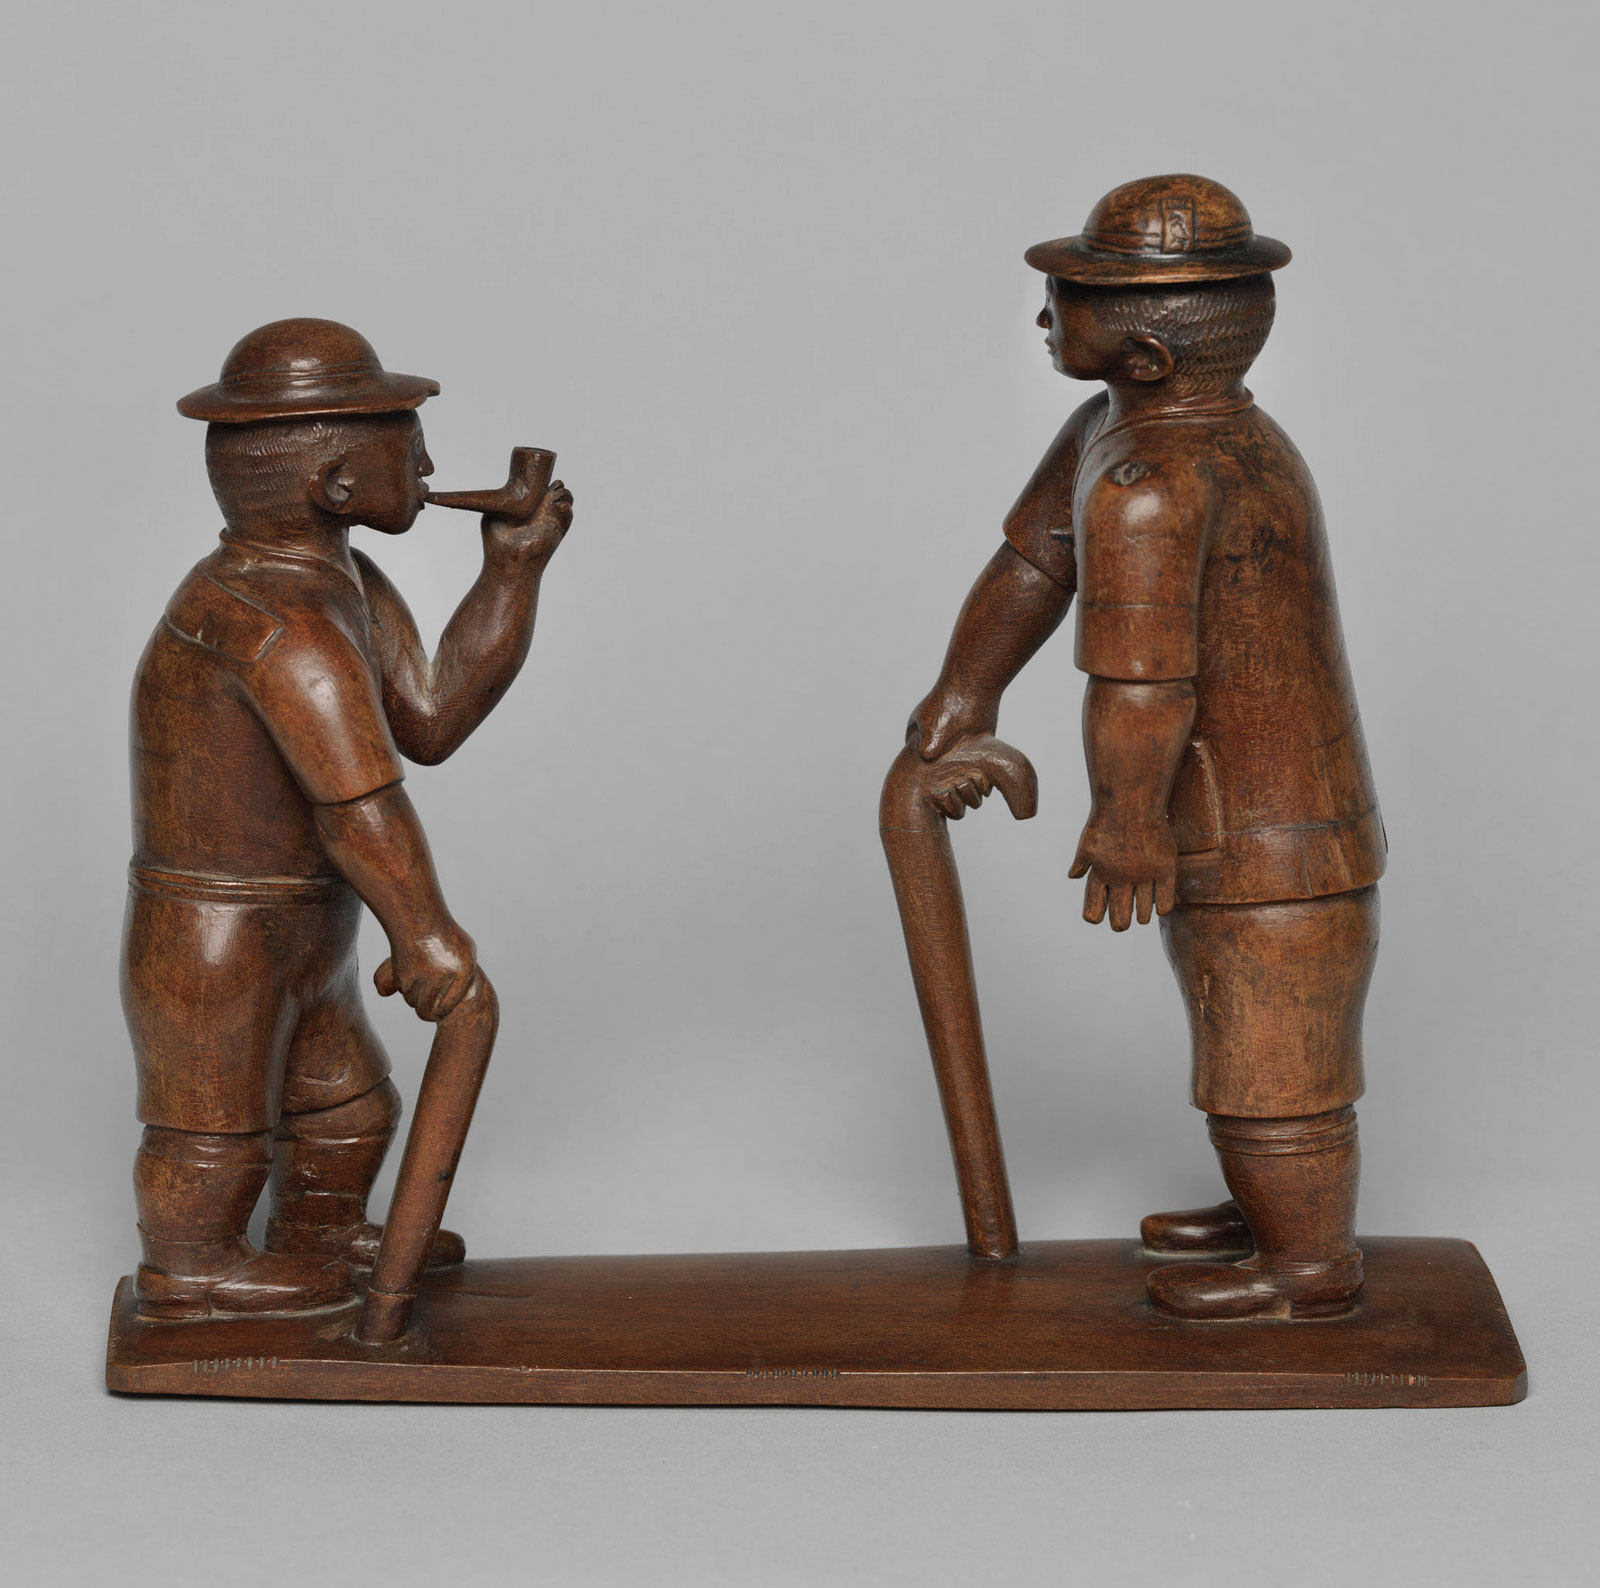 Kamba artist: Two European figures standing on a base, one with a stick and the other holding a pipe, circa 1900